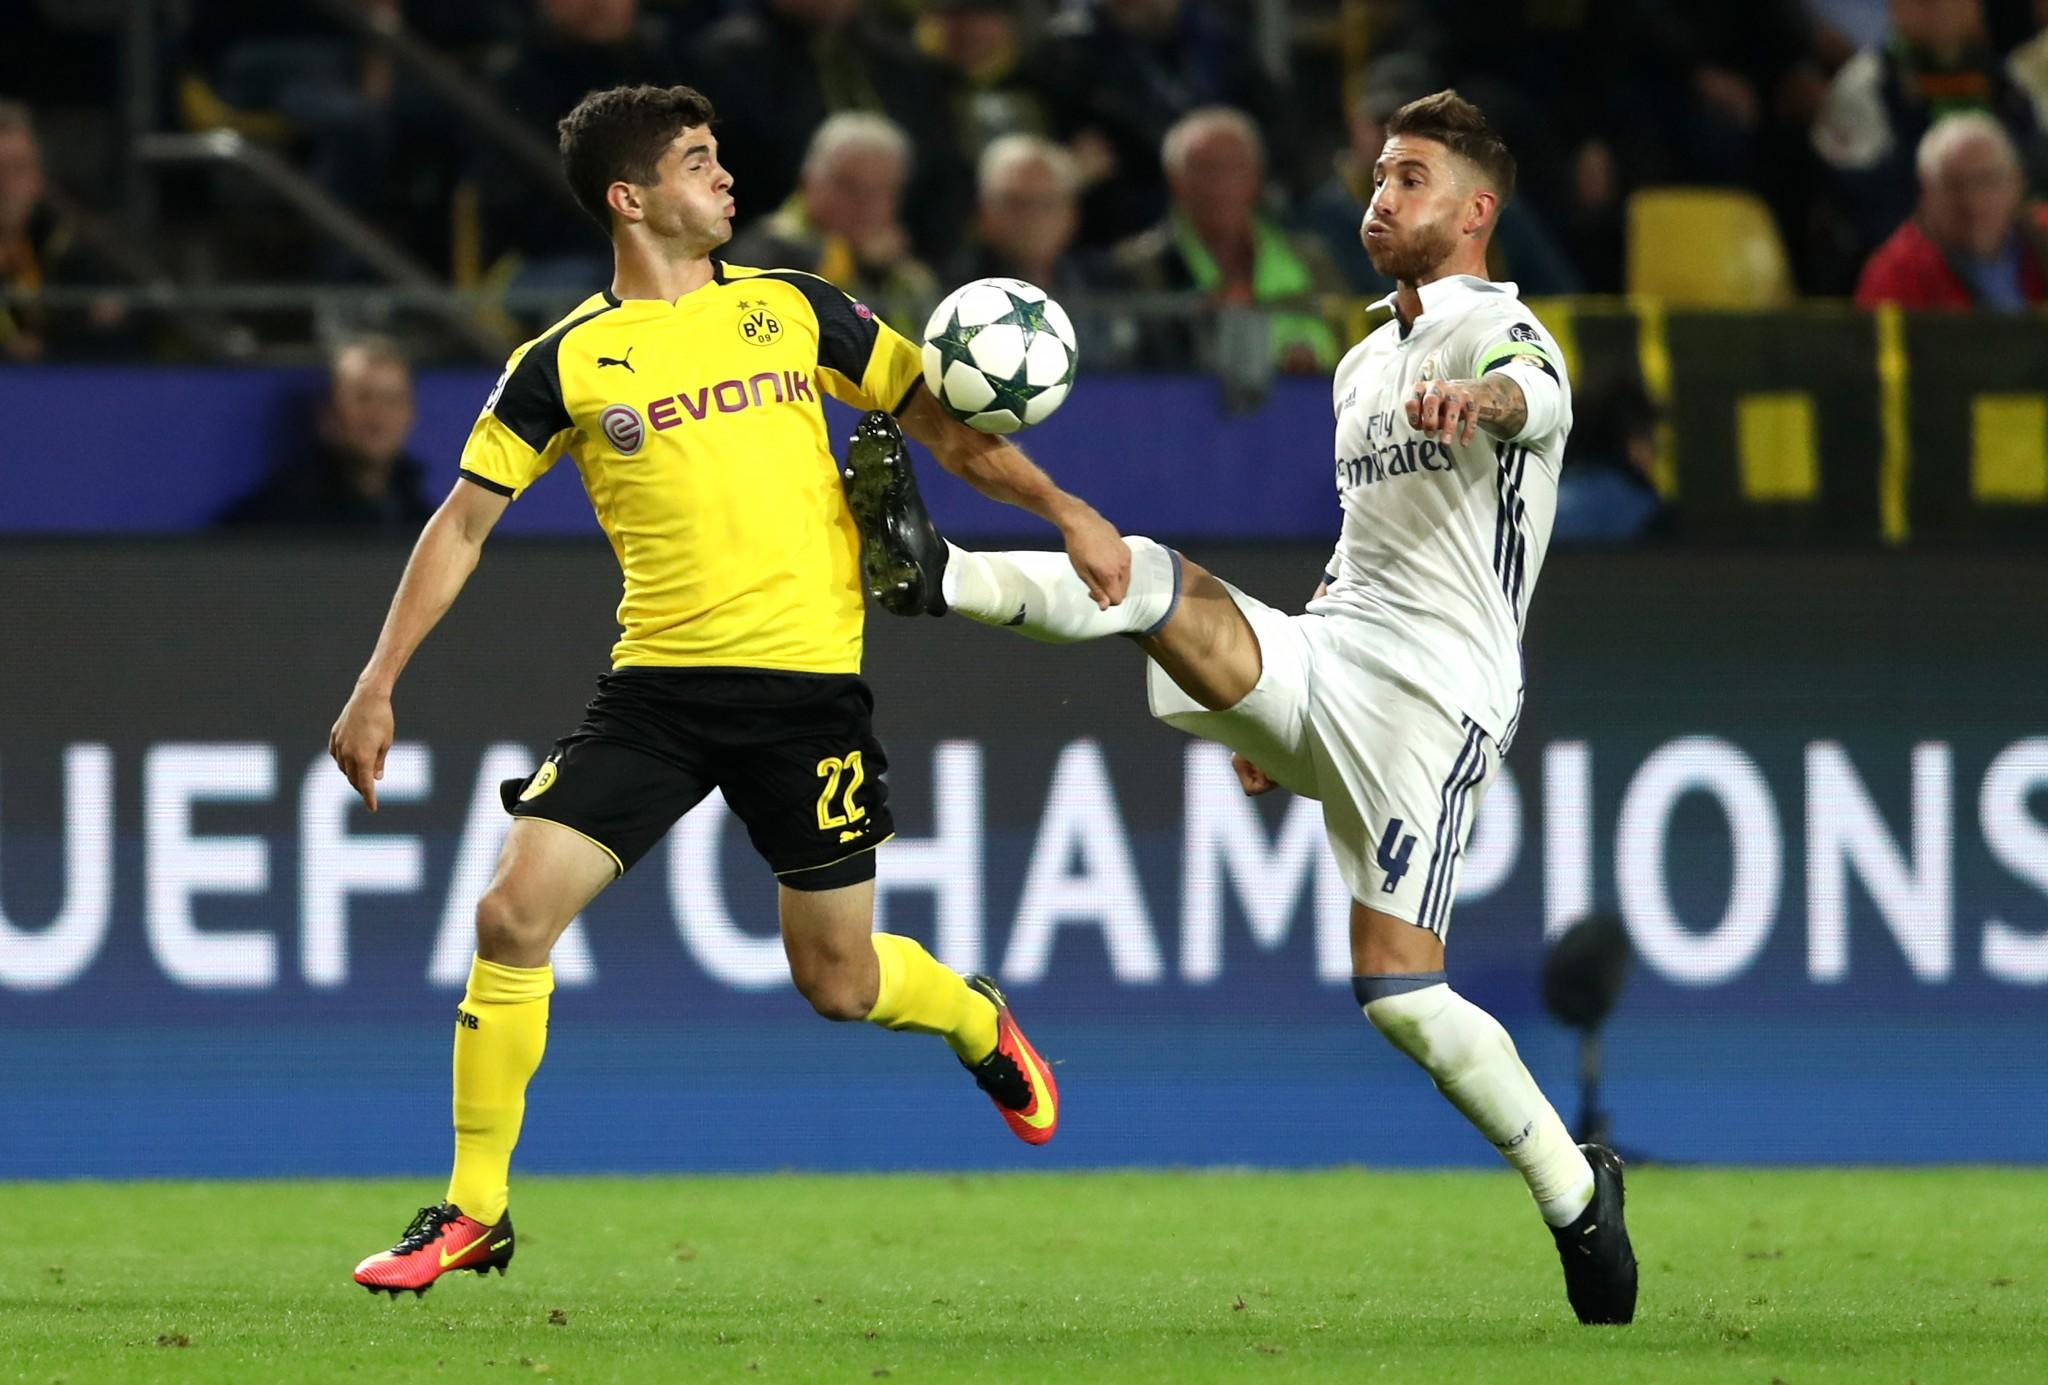 Christian Pulisic assist helps Borussia Dortmund draw 2-2 with Real Madrid